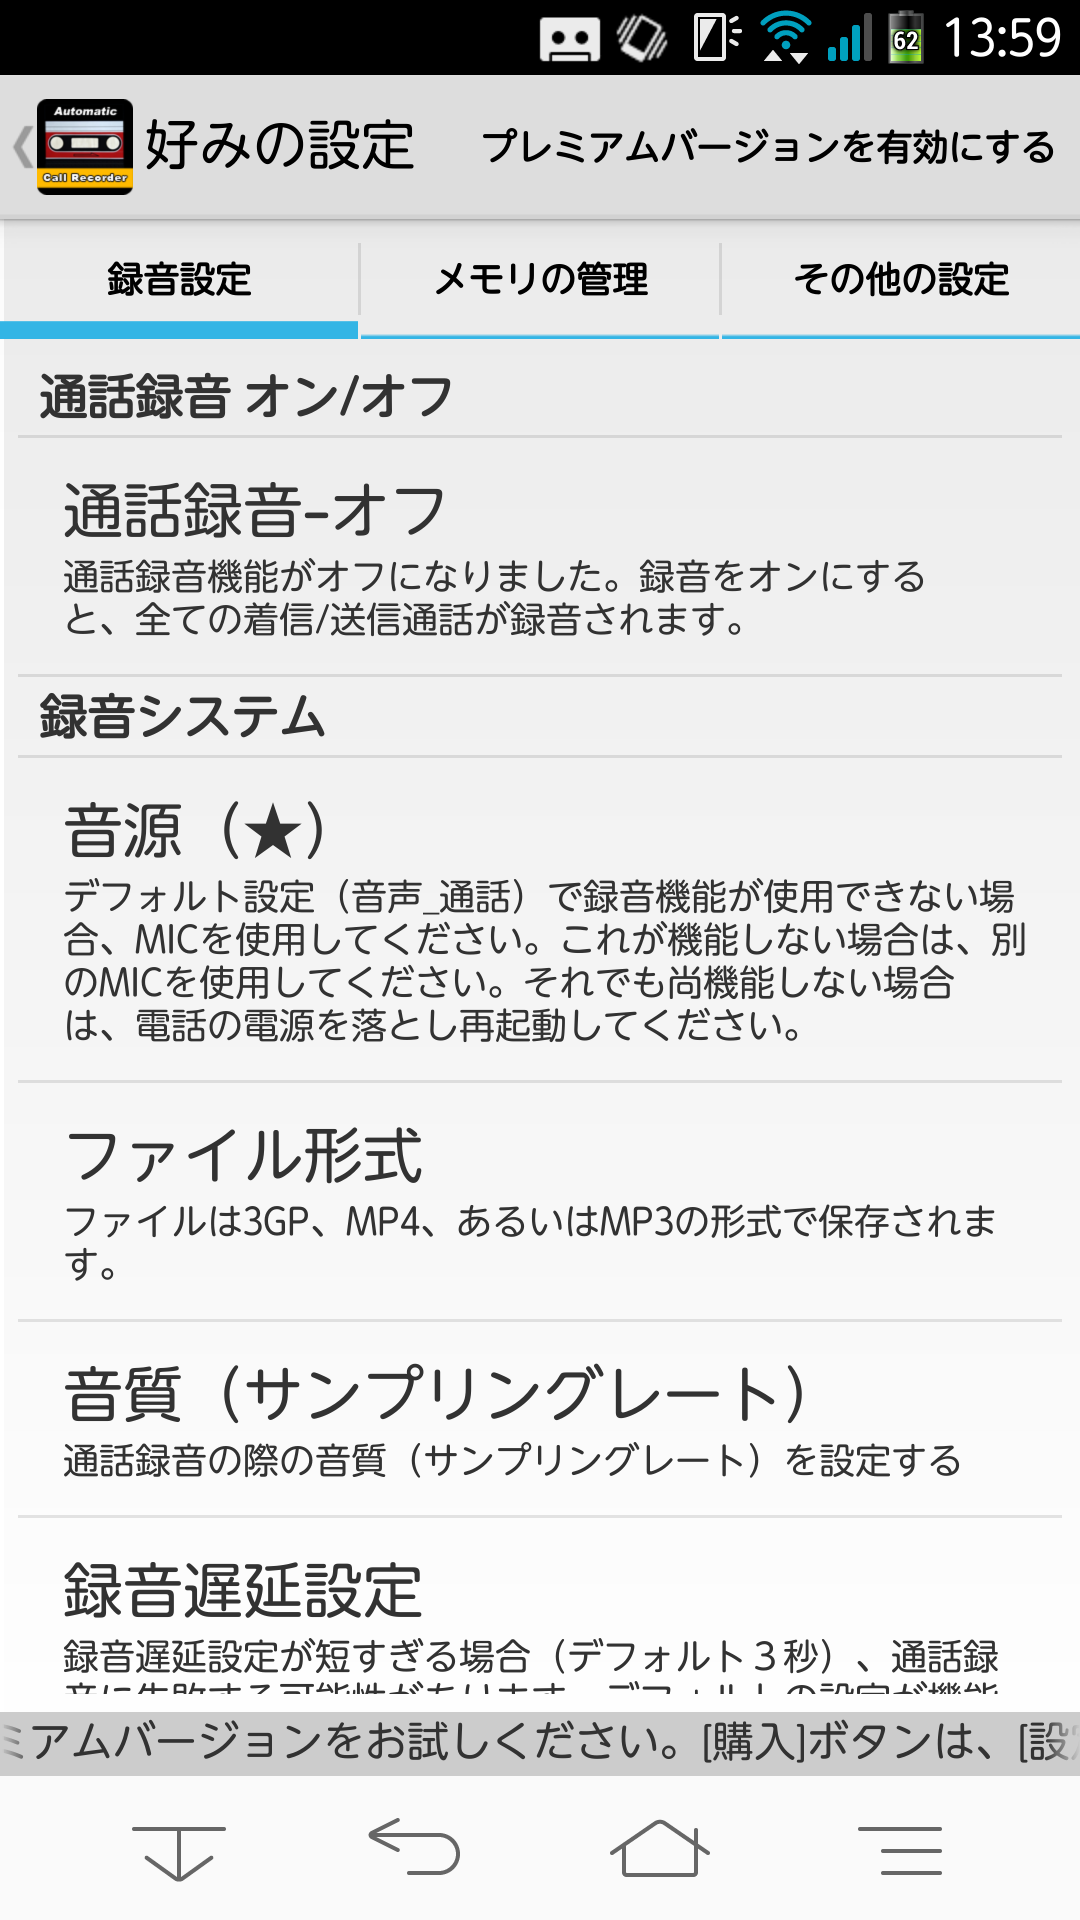 Screenshot_2014-08-09-13-59-51.png